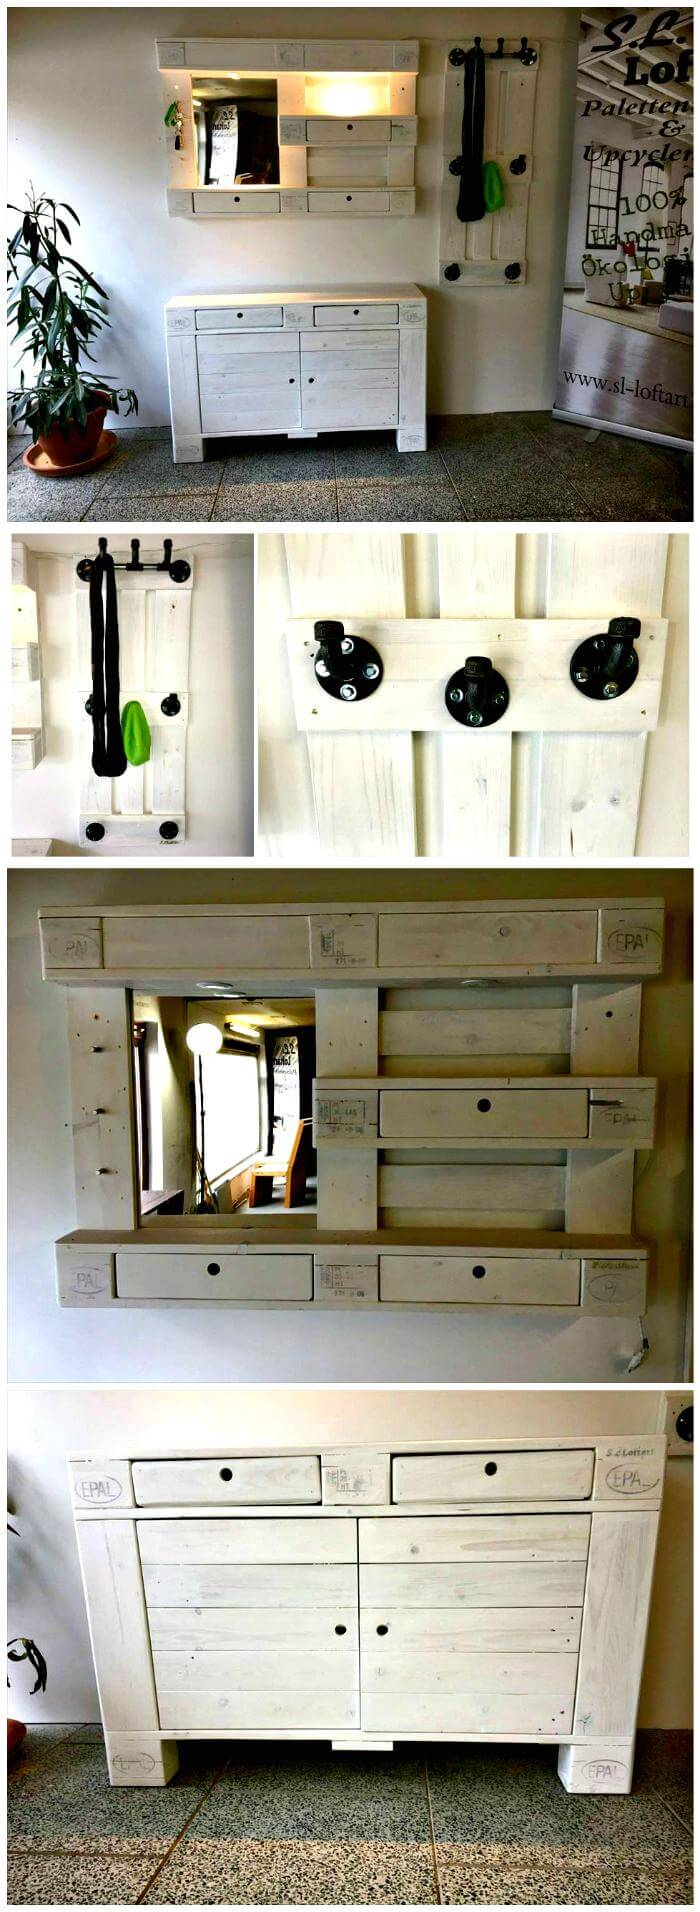 Pallet Chest of Drawers and Coat Rack DIY Mirror